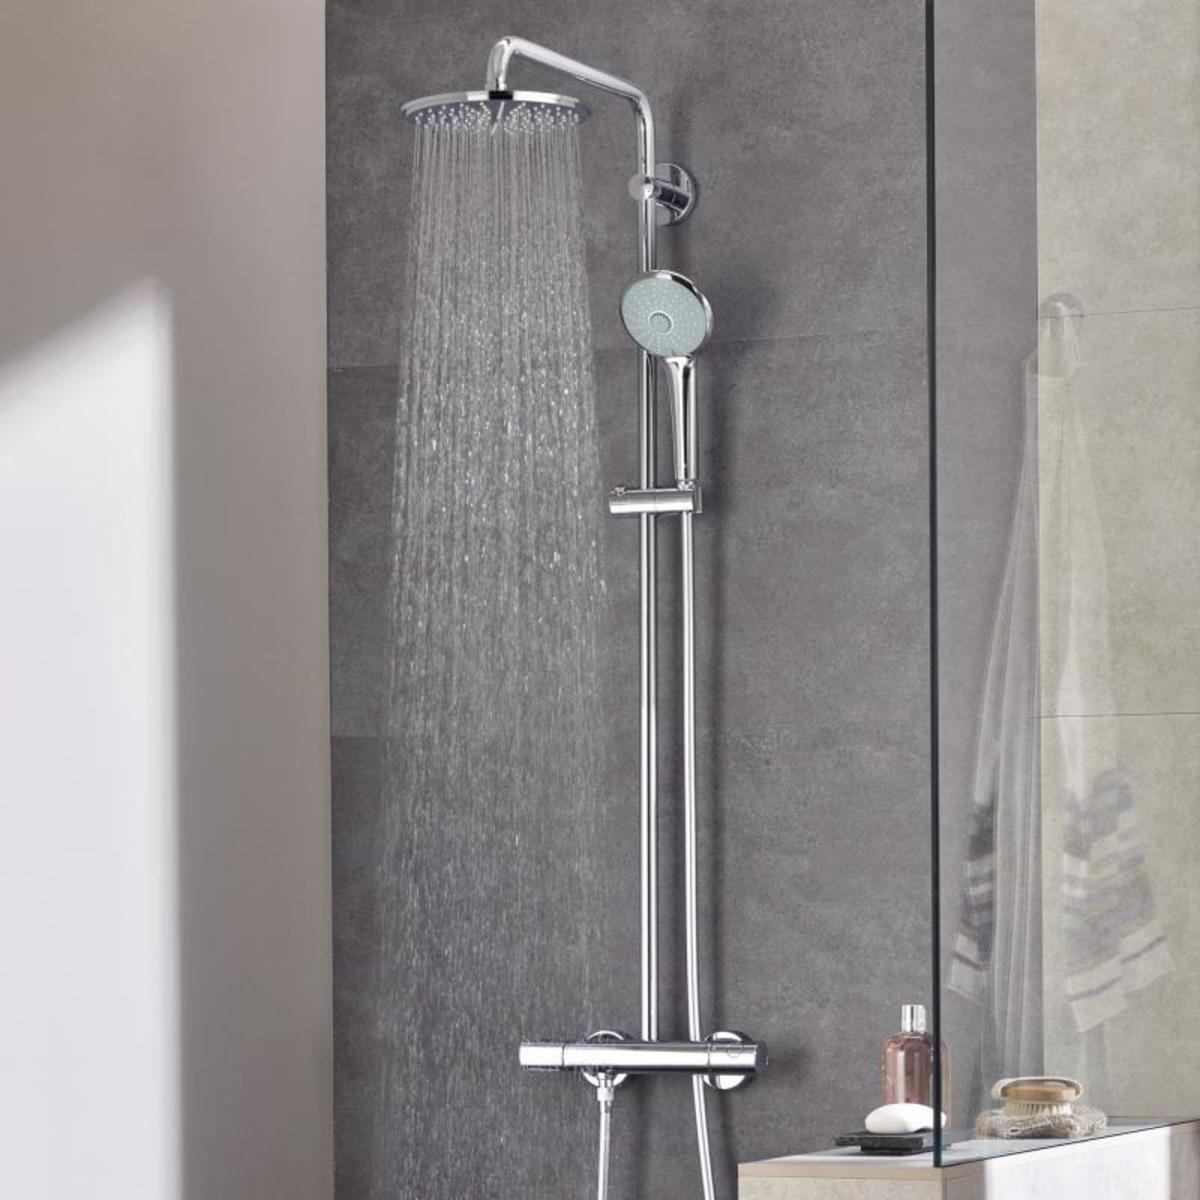 Grohe euphoria douchesysteem met douchekraan for Grohe cosmopolitan 1000 thermostat